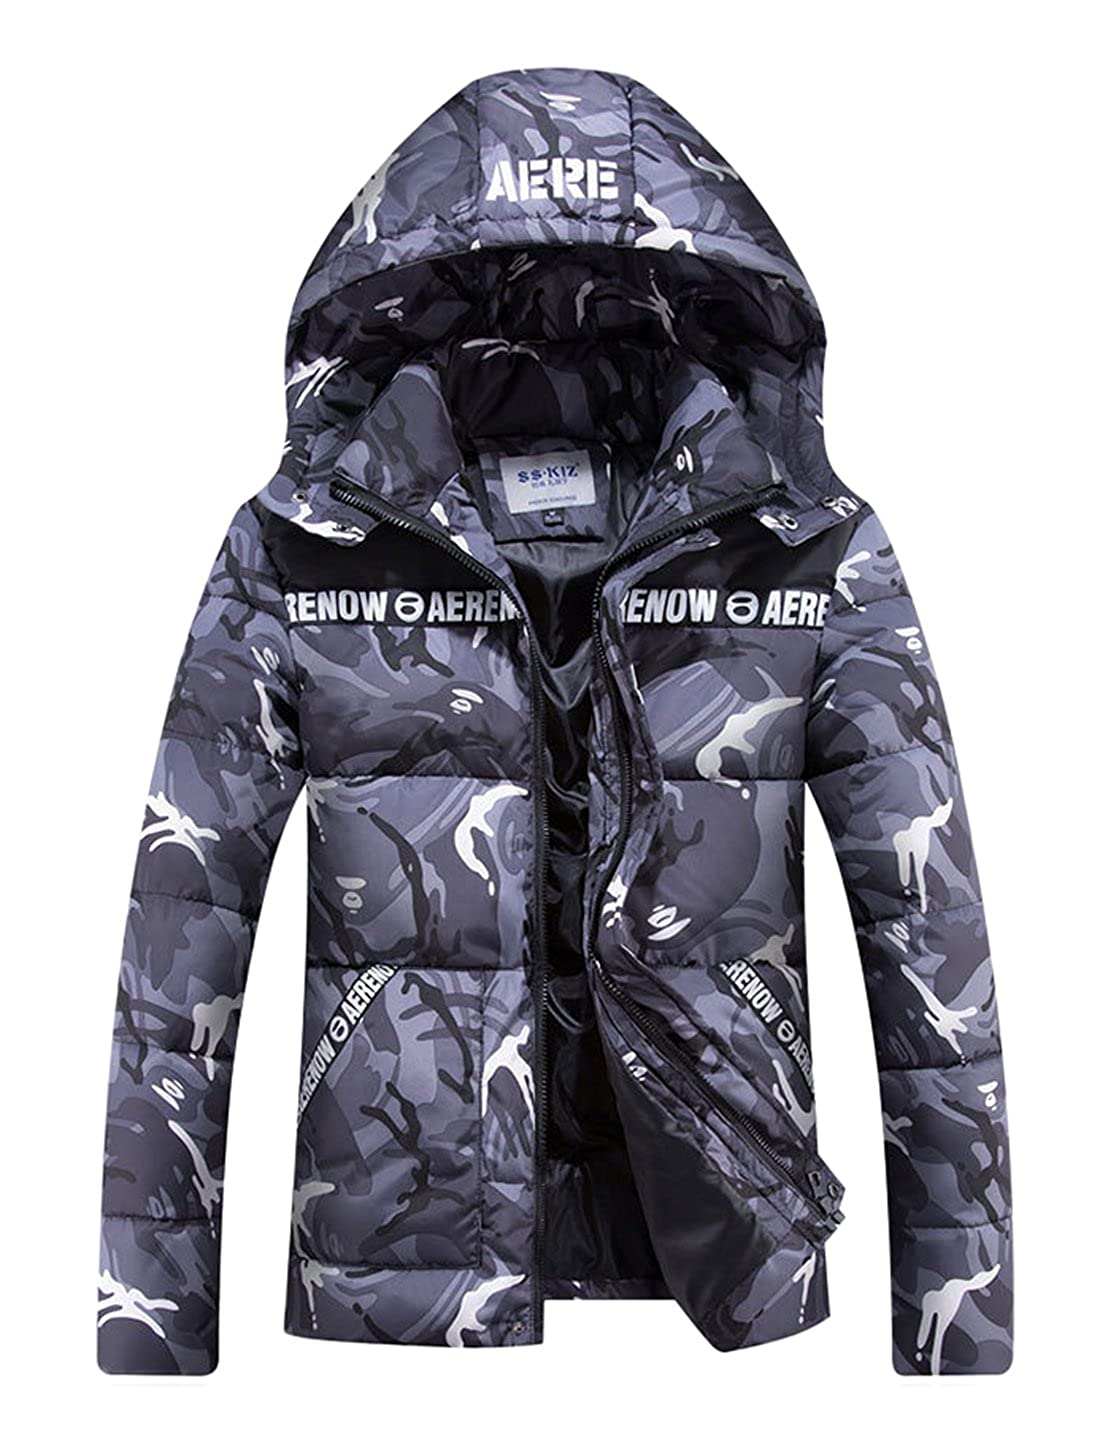 CHARTOU Mens Winter Hooded Camouflage Quilted Puffer Coat Padded Jacket Parkas Outwear